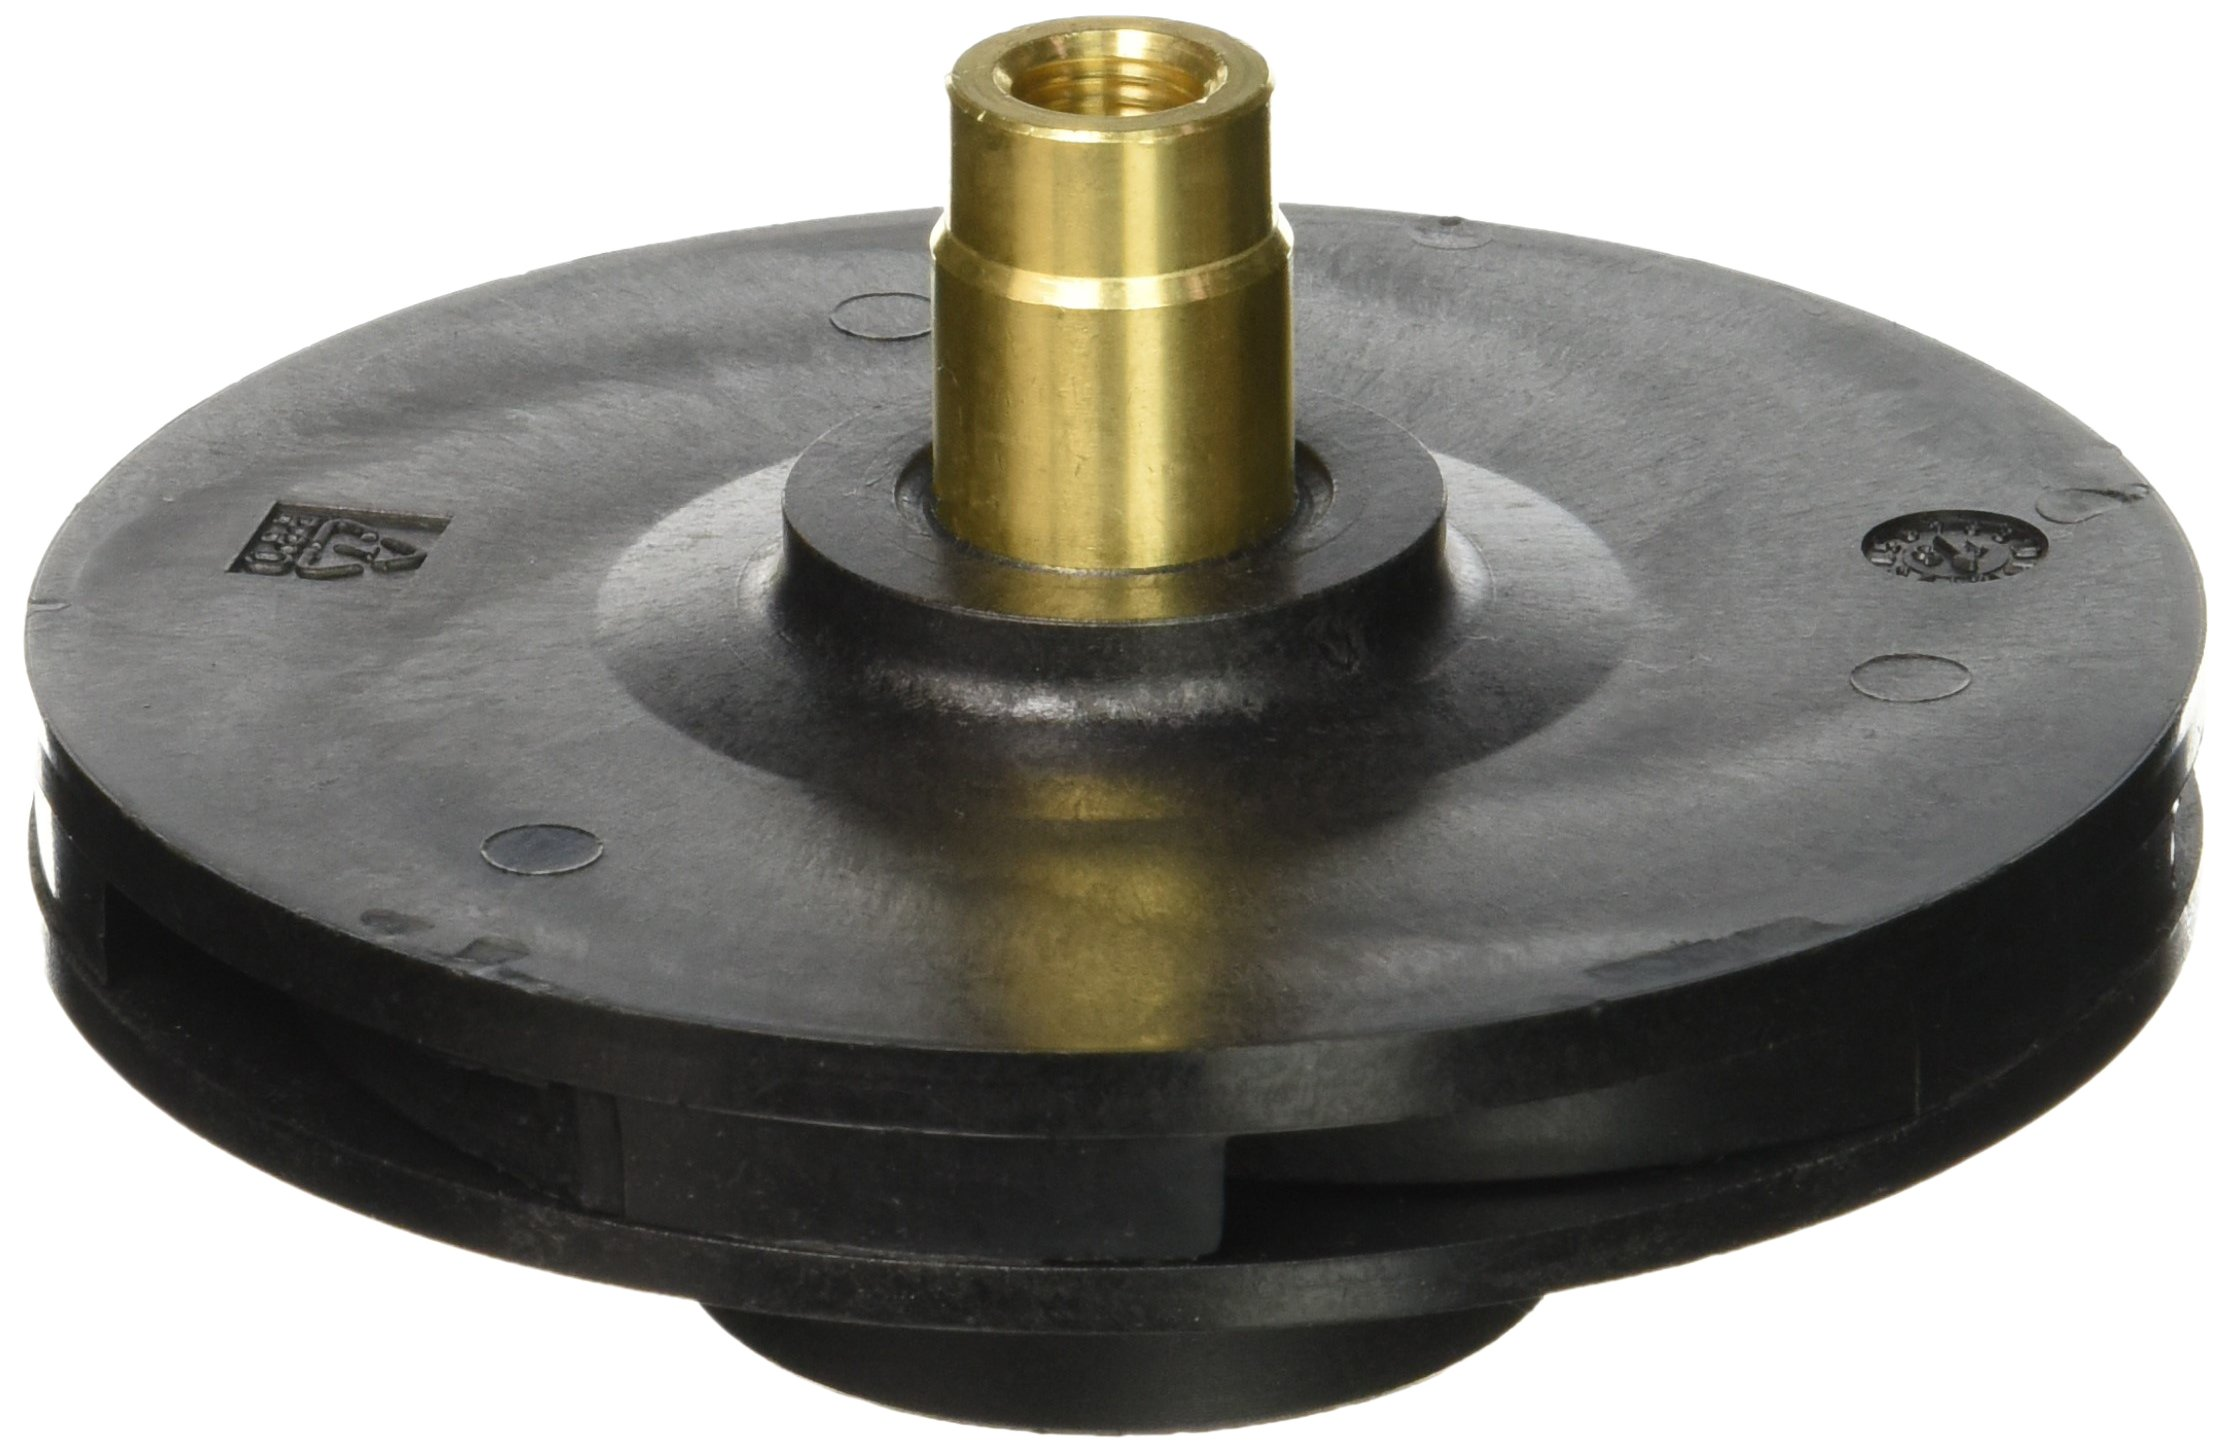 Hayward SPX3005C 1/2-Horsepower Impeller Replacement for Hayward Super Ii Pump